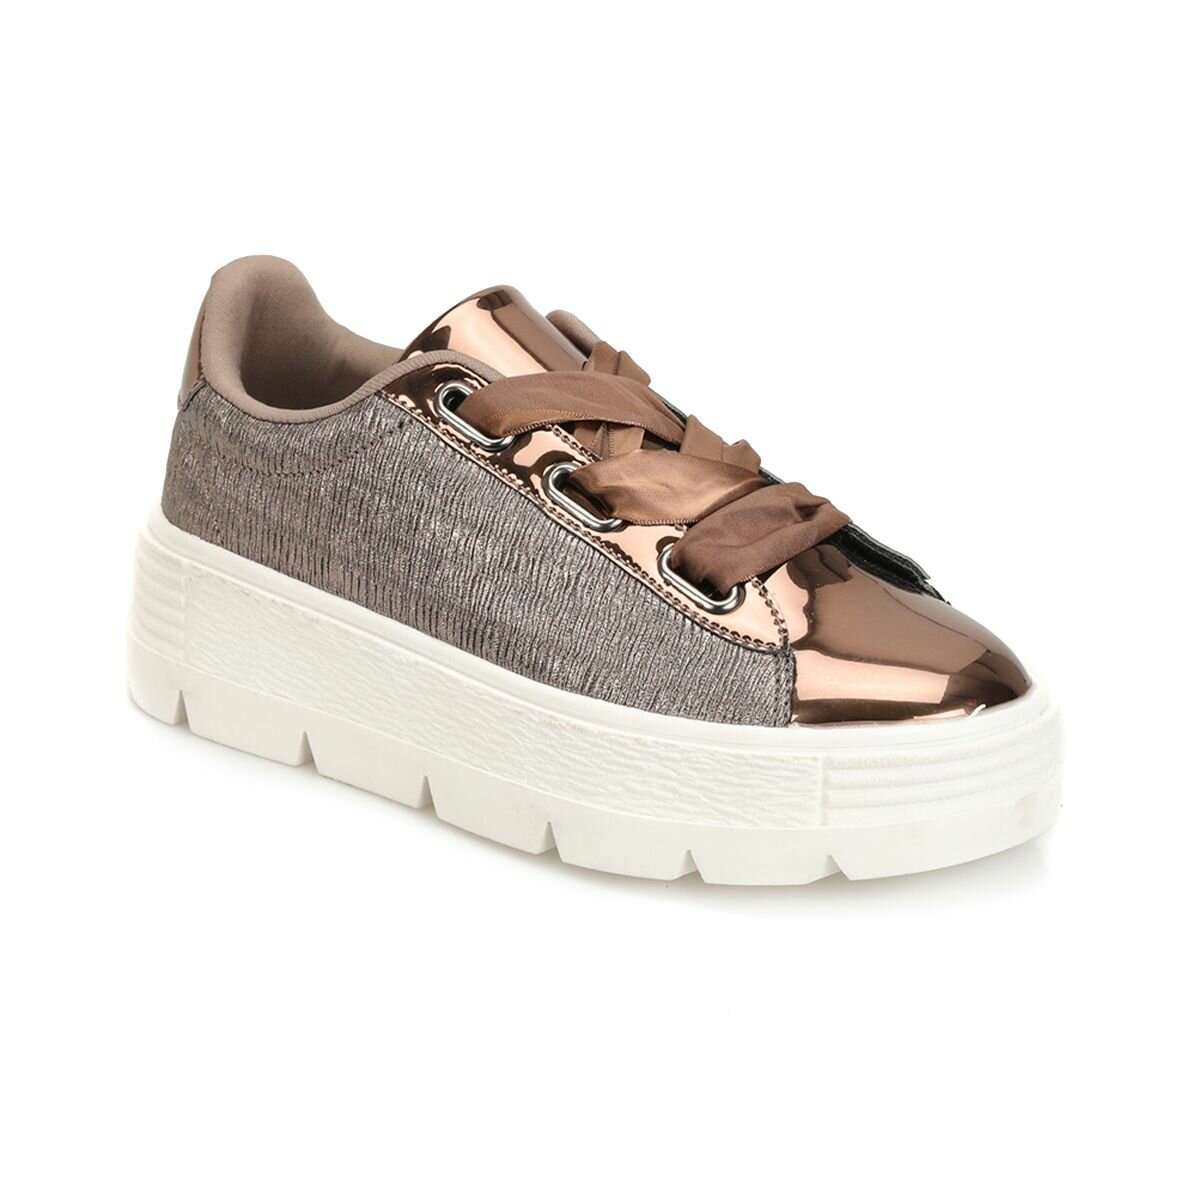 FLO 18K-335 Brown Women 'S Sneaker Shoes BUTIGO